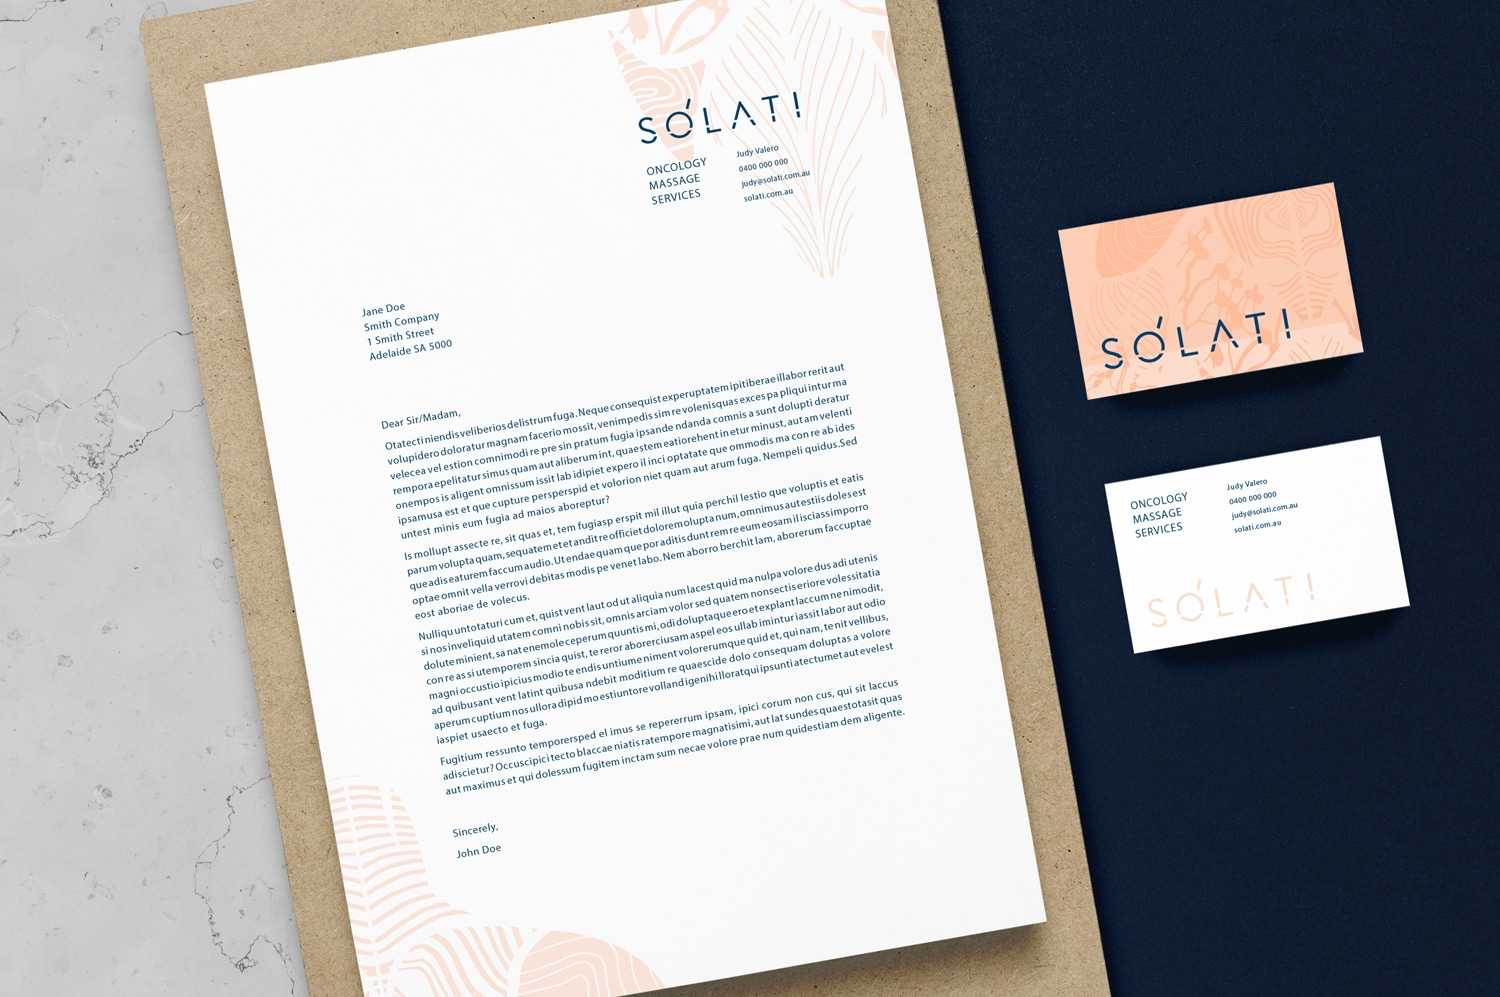 Solati branding business cards letterhead Adelaide Oncology Massage Services graphic design